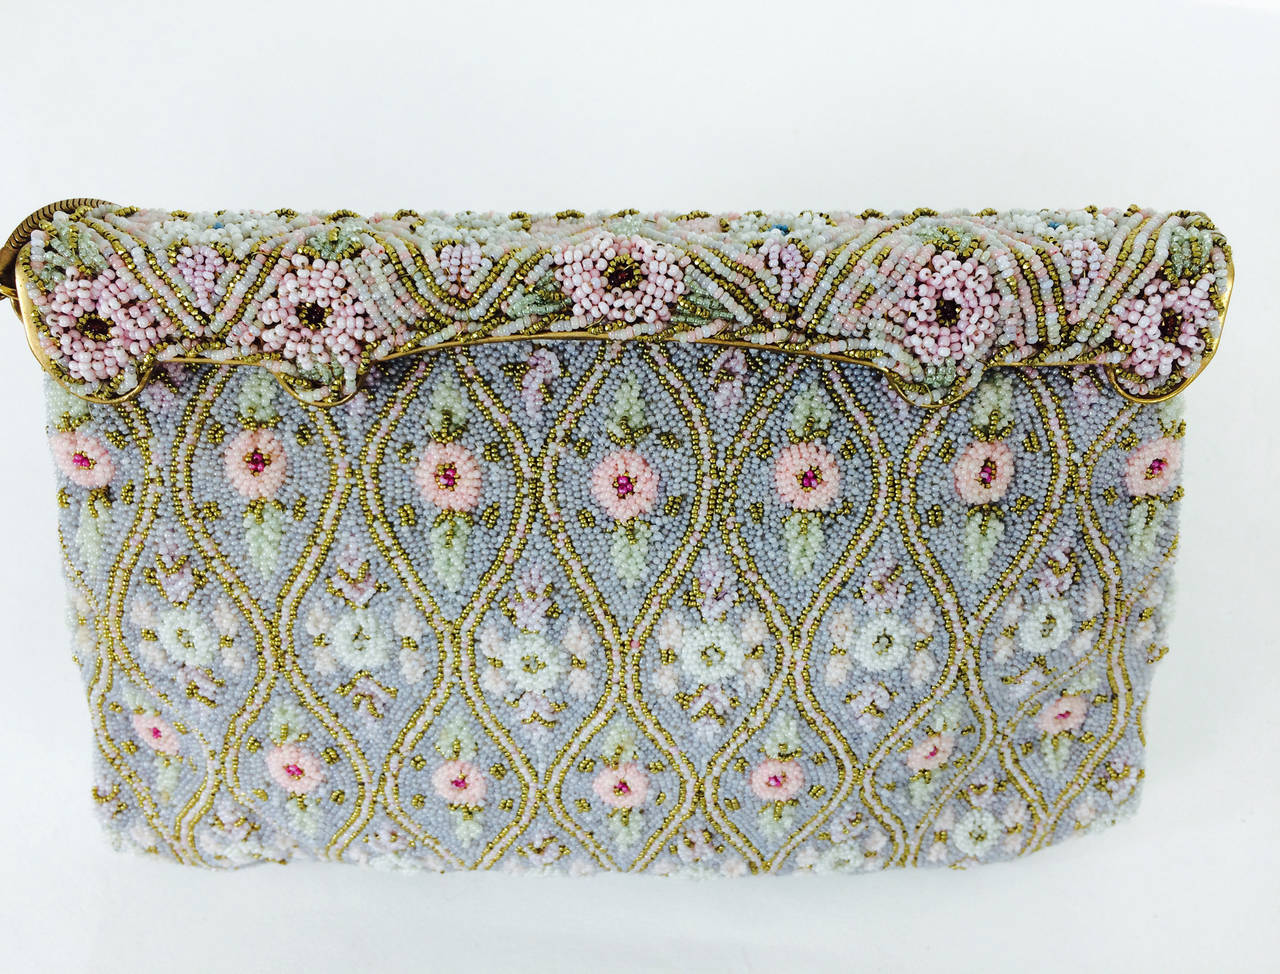 Caviar beaded floral design evening bag made in France 1950s...Beautiful pastel beaded bag in soft pinks, ivory and gold...The bag is completely hand beaded, with a beaded snap closure frame...Lined in off white satin with 2 open compartments each